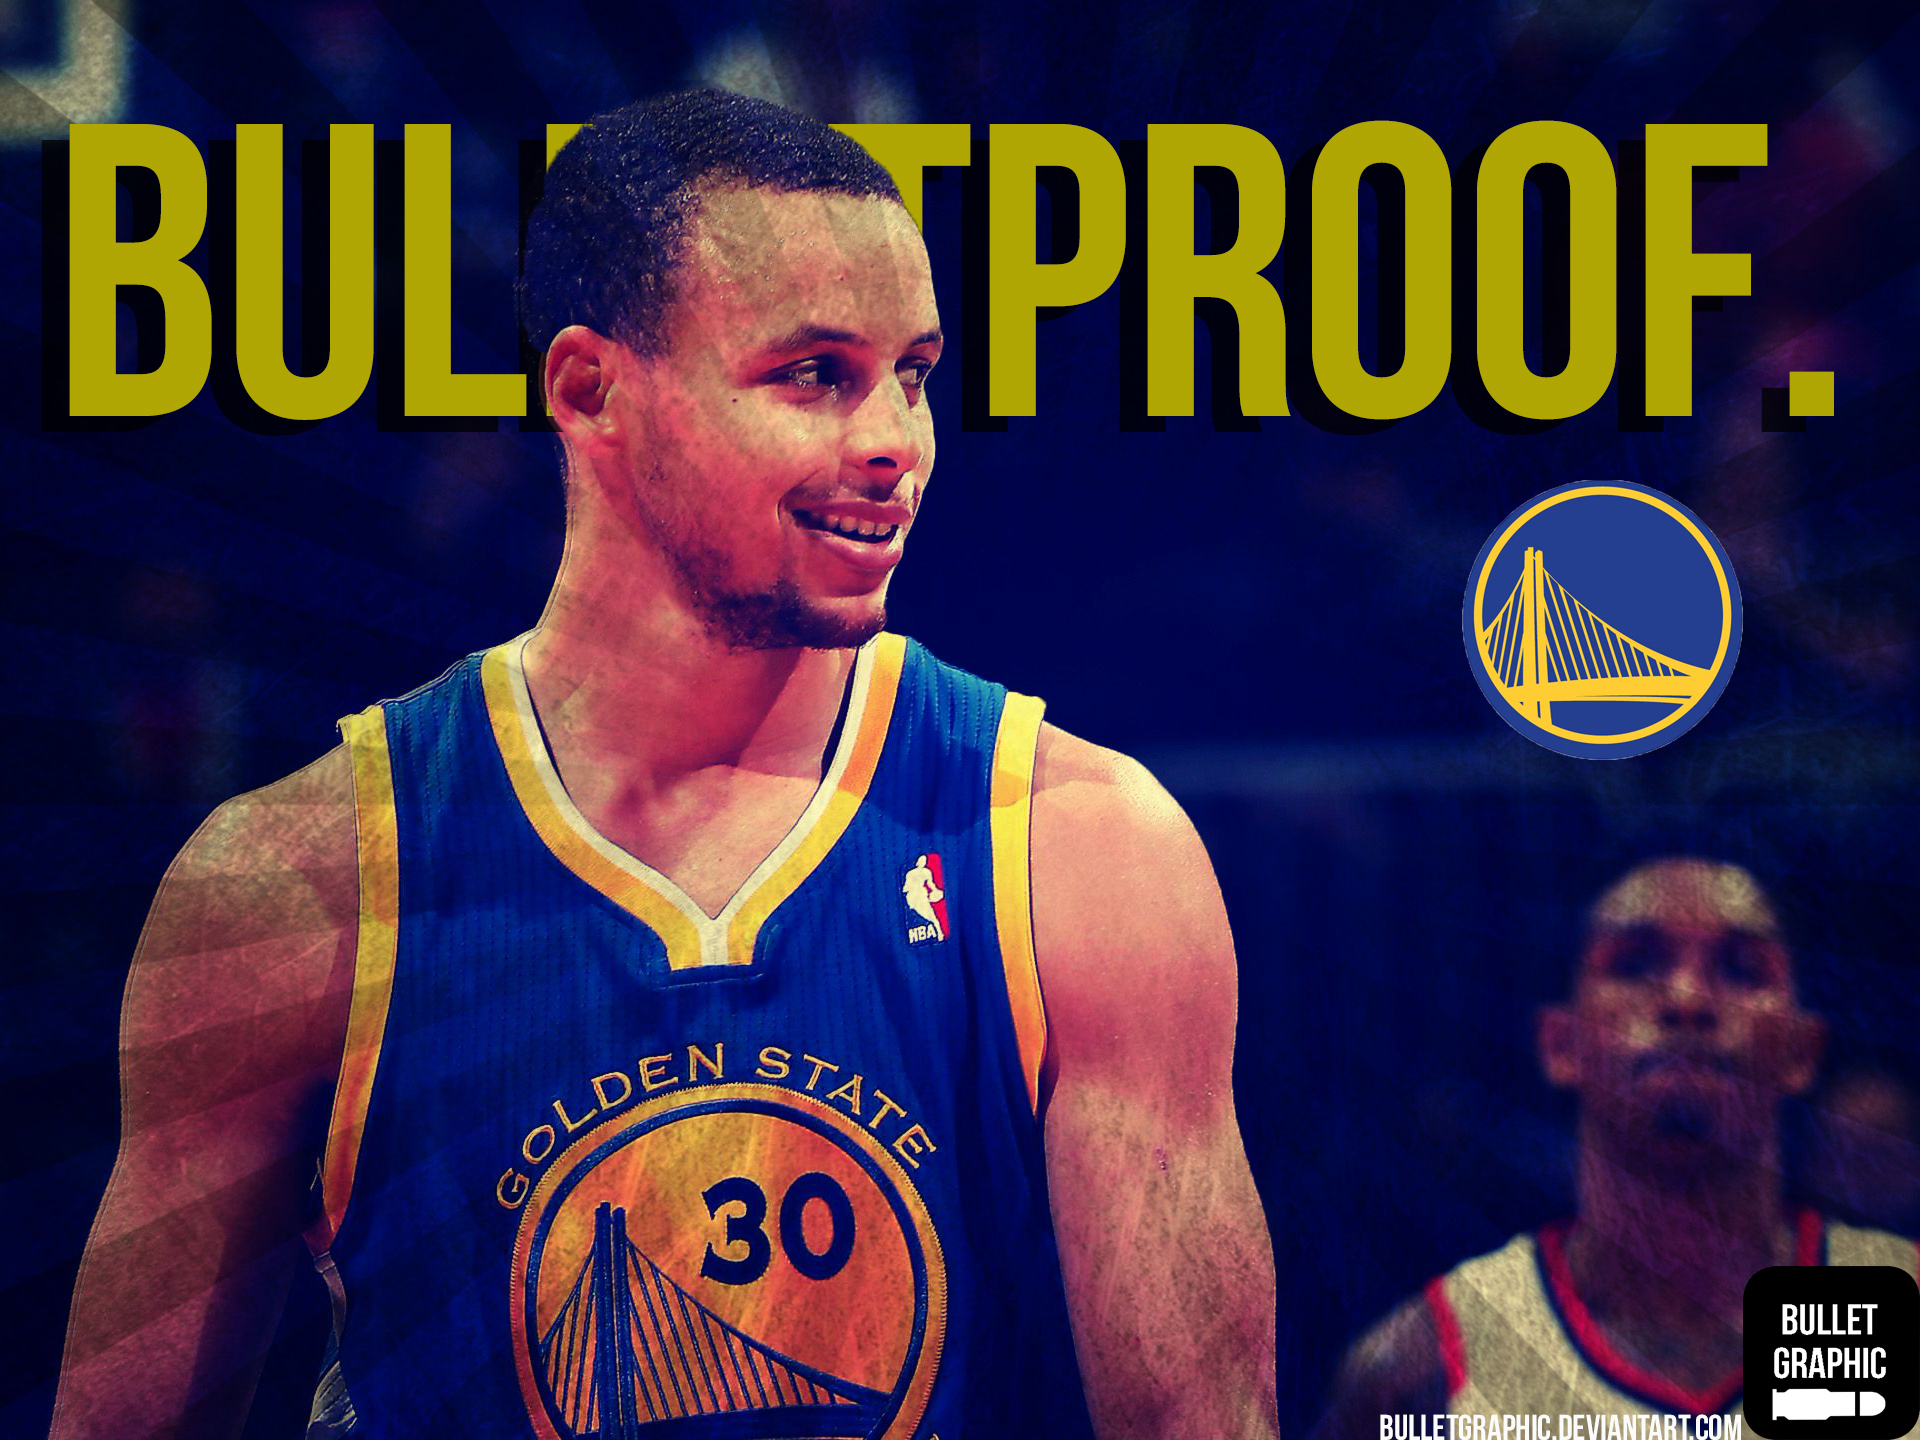 FunMozar Stephen Curry Wallpaper 1920x1440